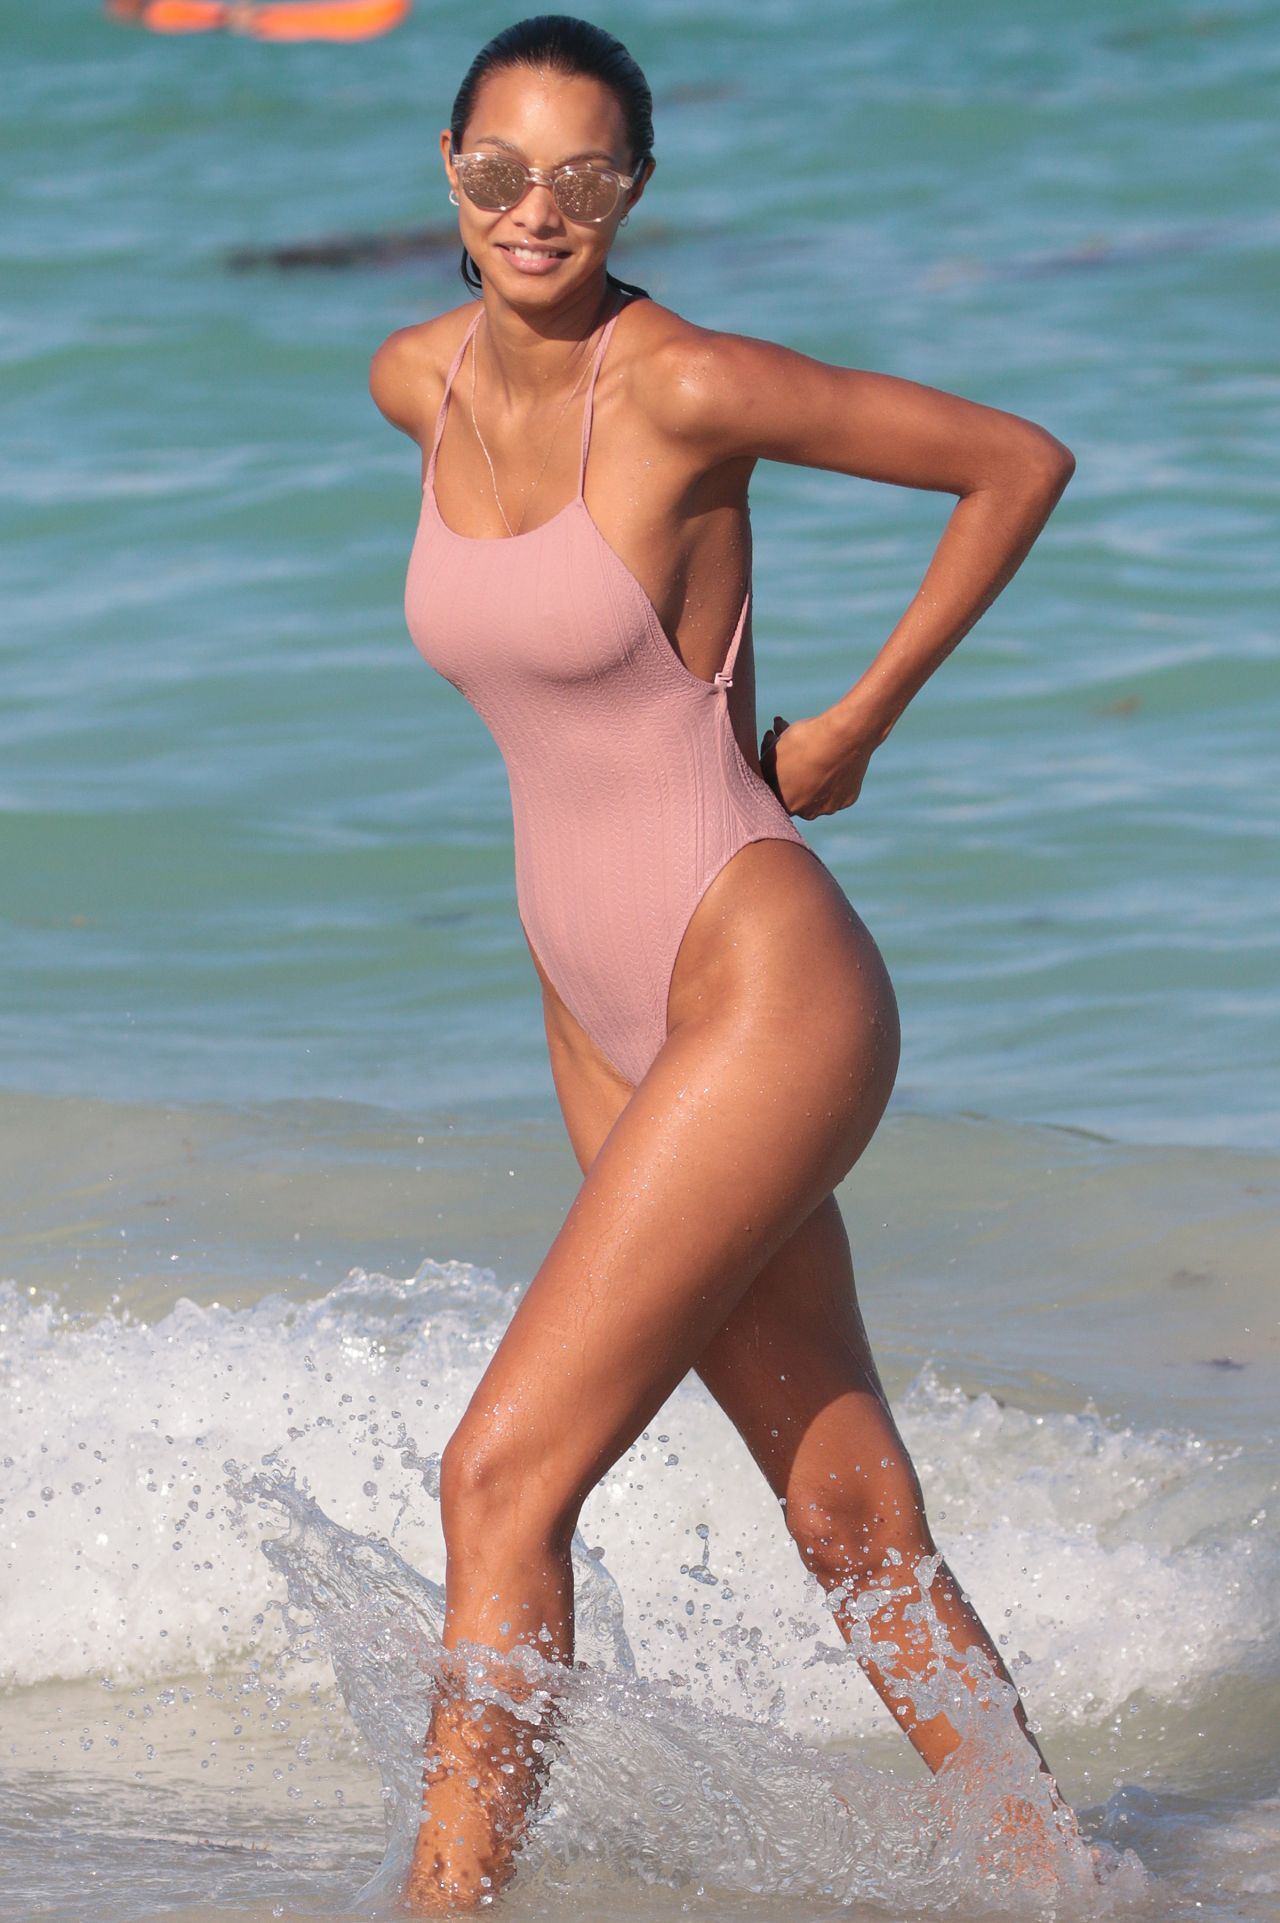 lais-ribeiro-in-swinsuit-miami-beach-04-03-2018-17.jpg